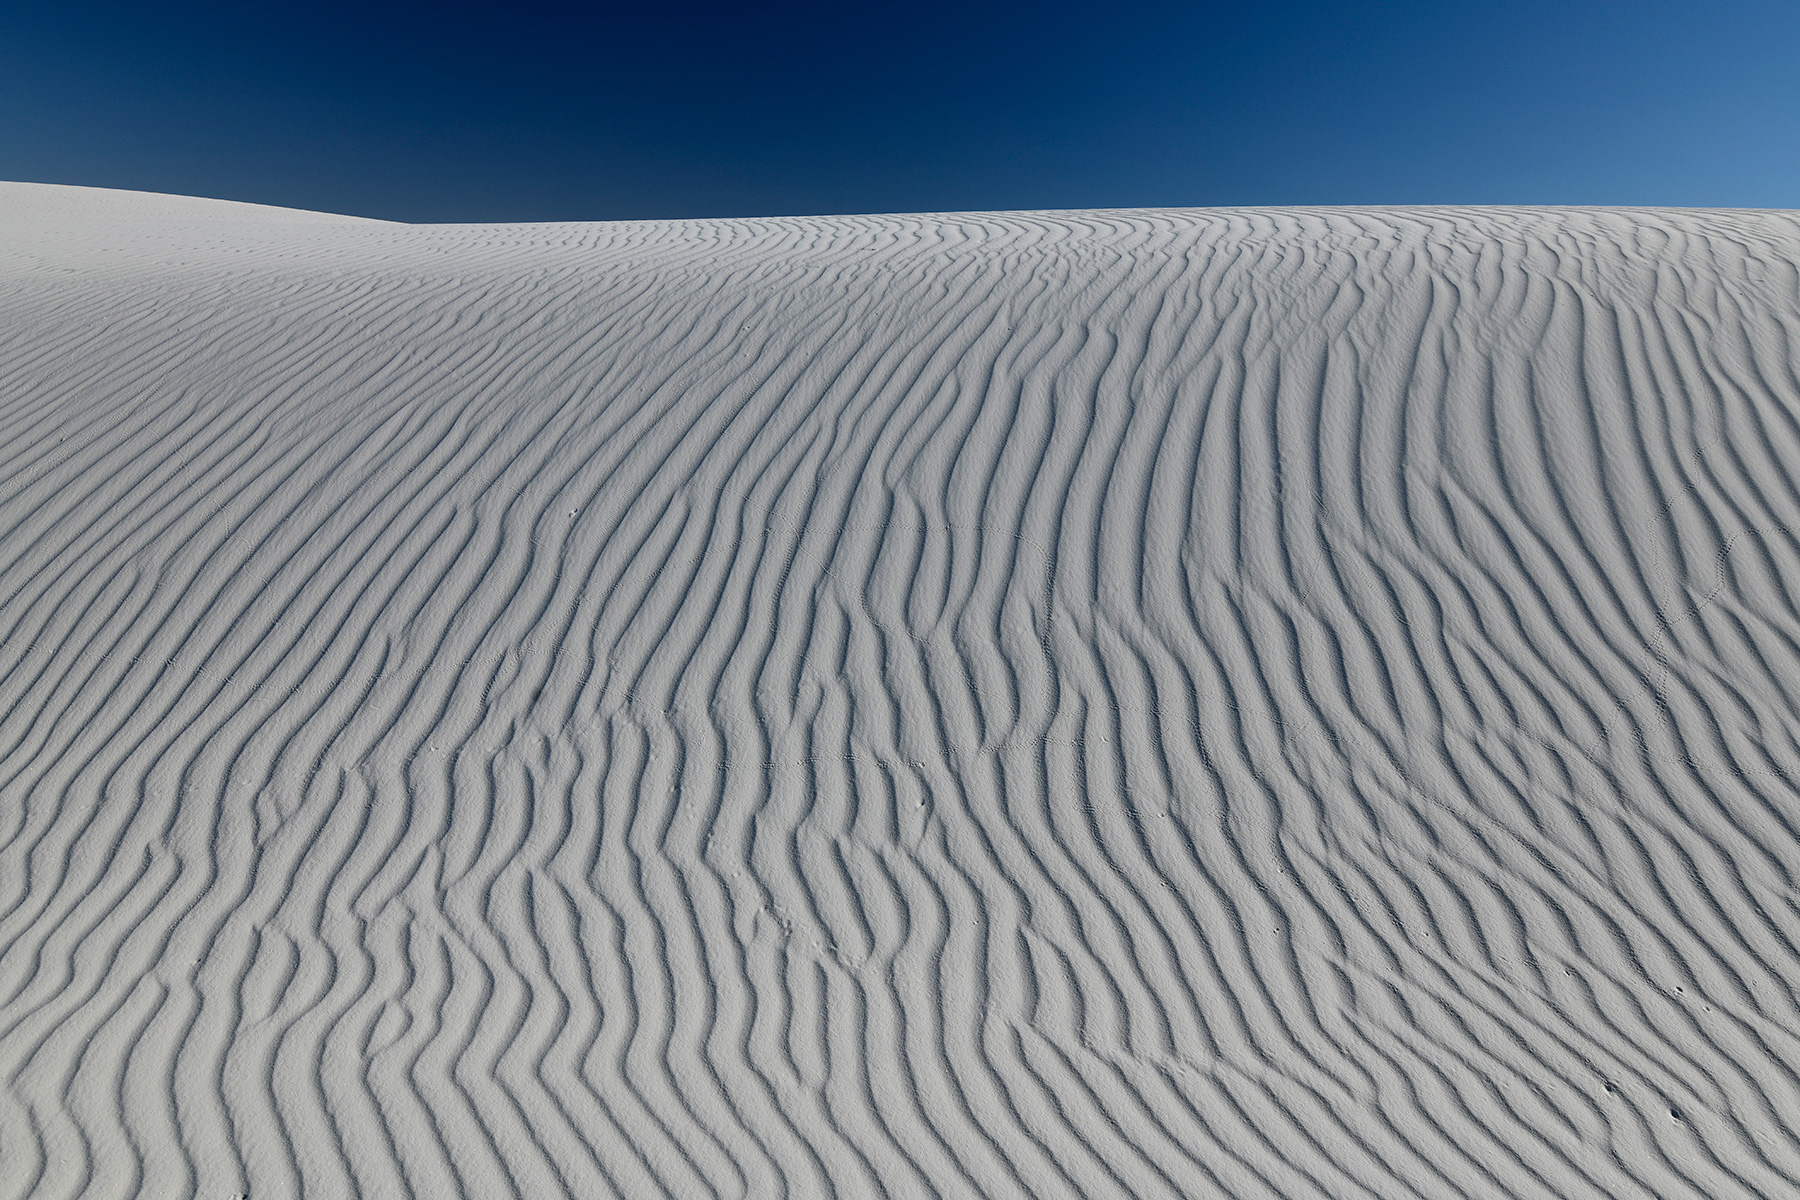 White Sands National Park (Nouveau Mexique, USA) - Dune de sable blanc de gypse avec rides